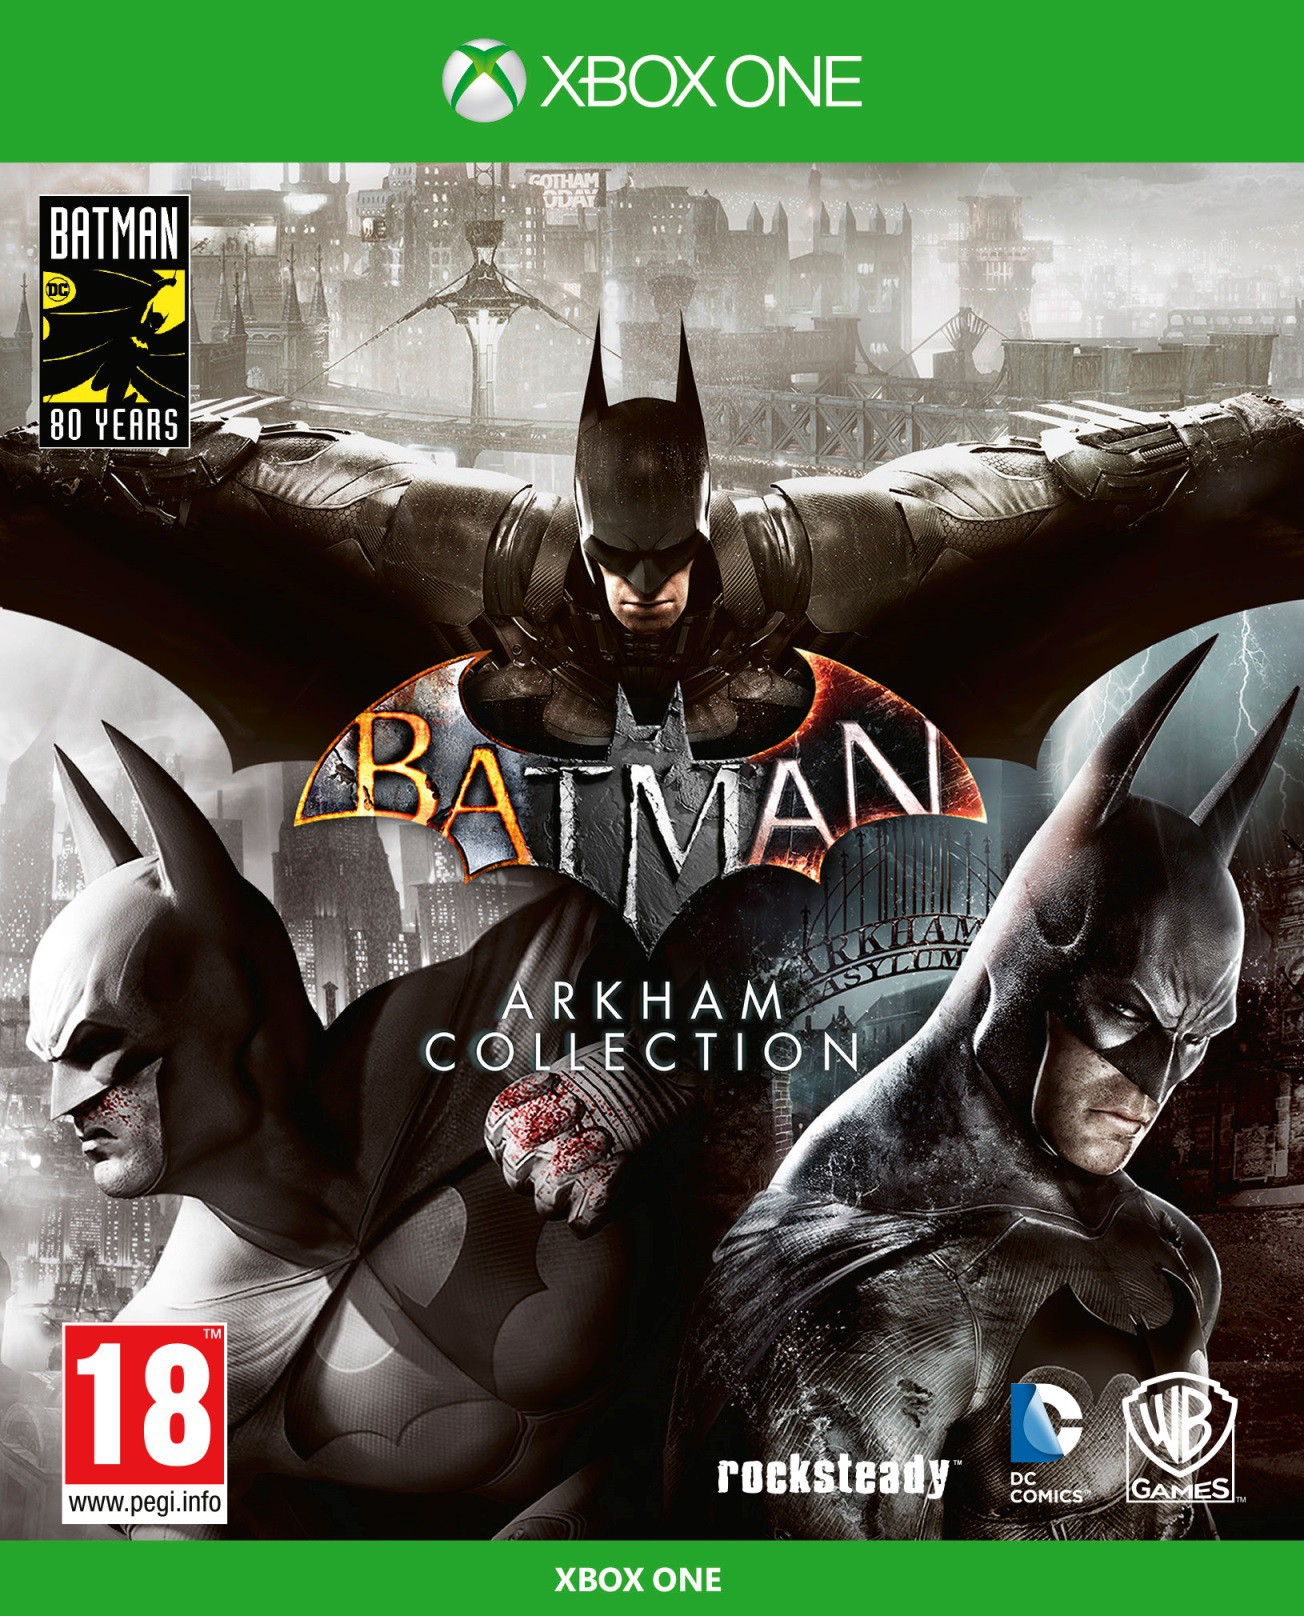 Batman: Arkham Collection Steelbook Edition